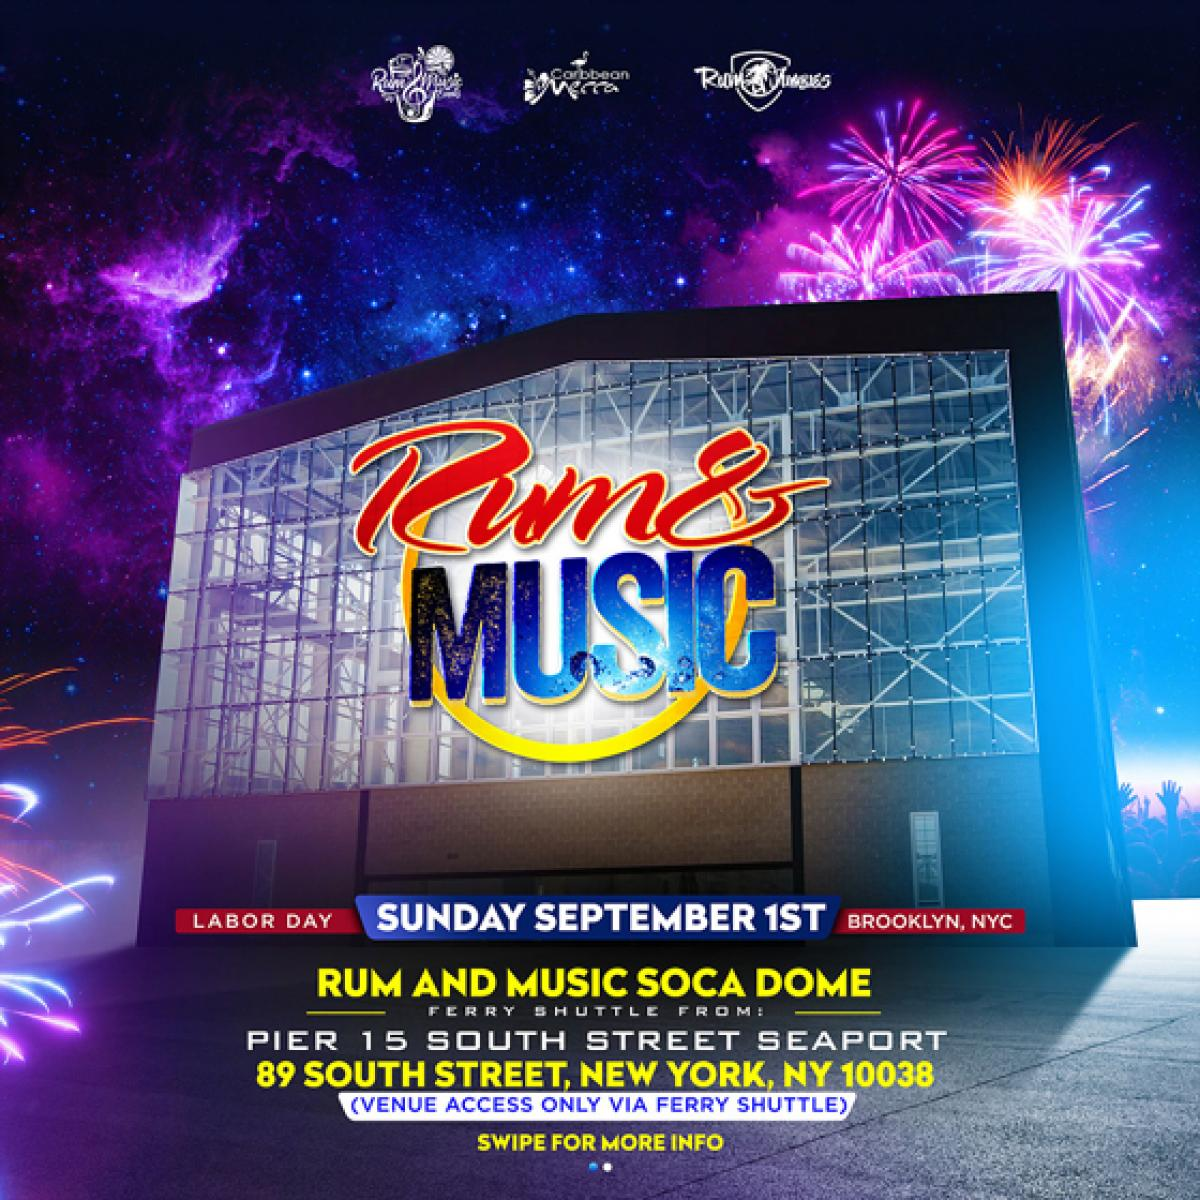 Rum and Music flyer or graphic.